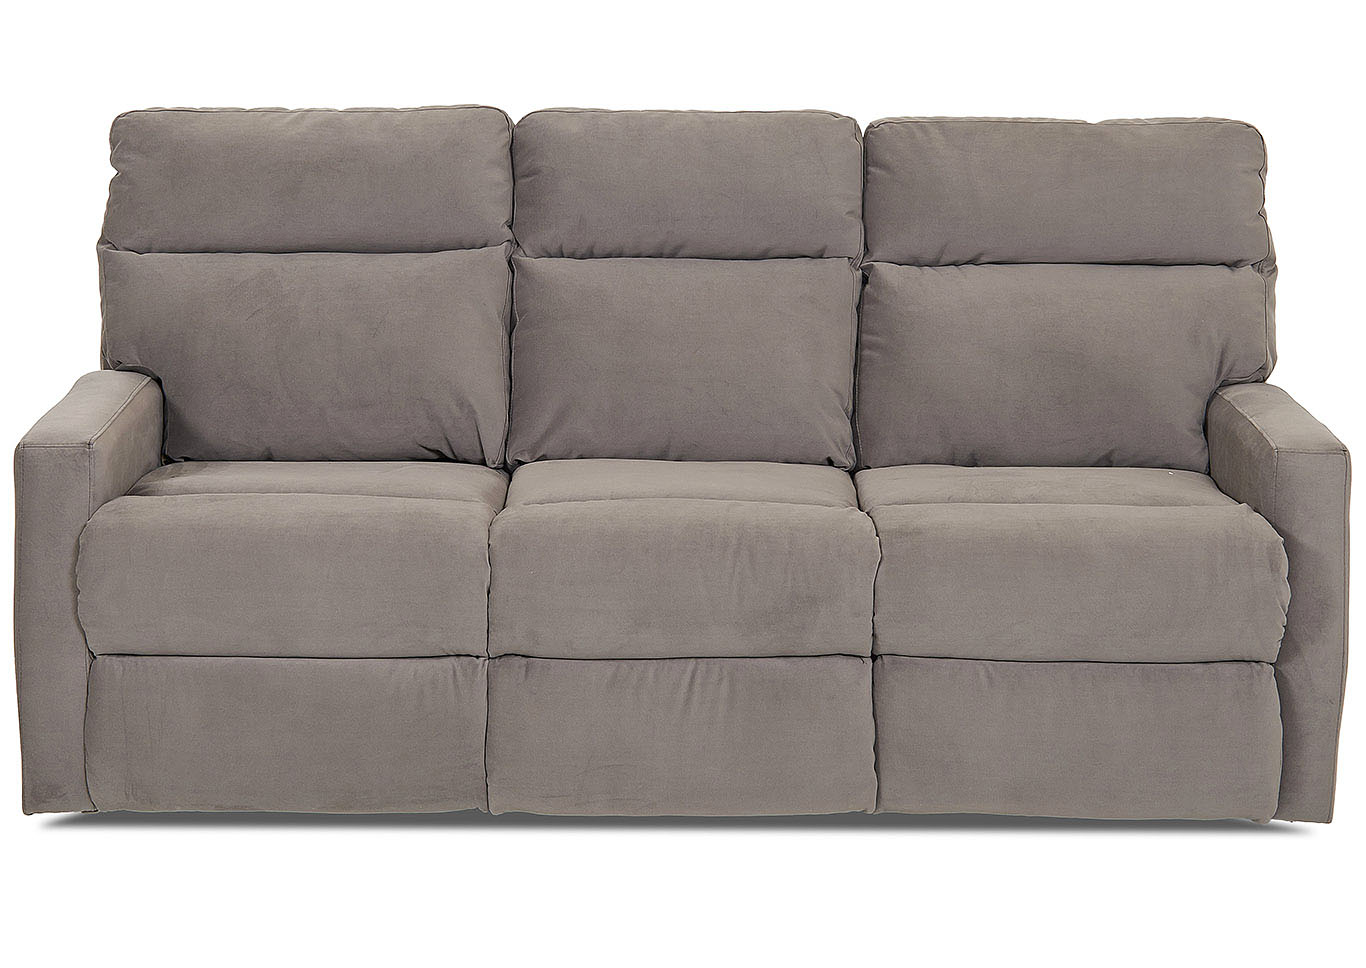 Monticello Reclining Leather Sofa,Klaussner Home Furnishings